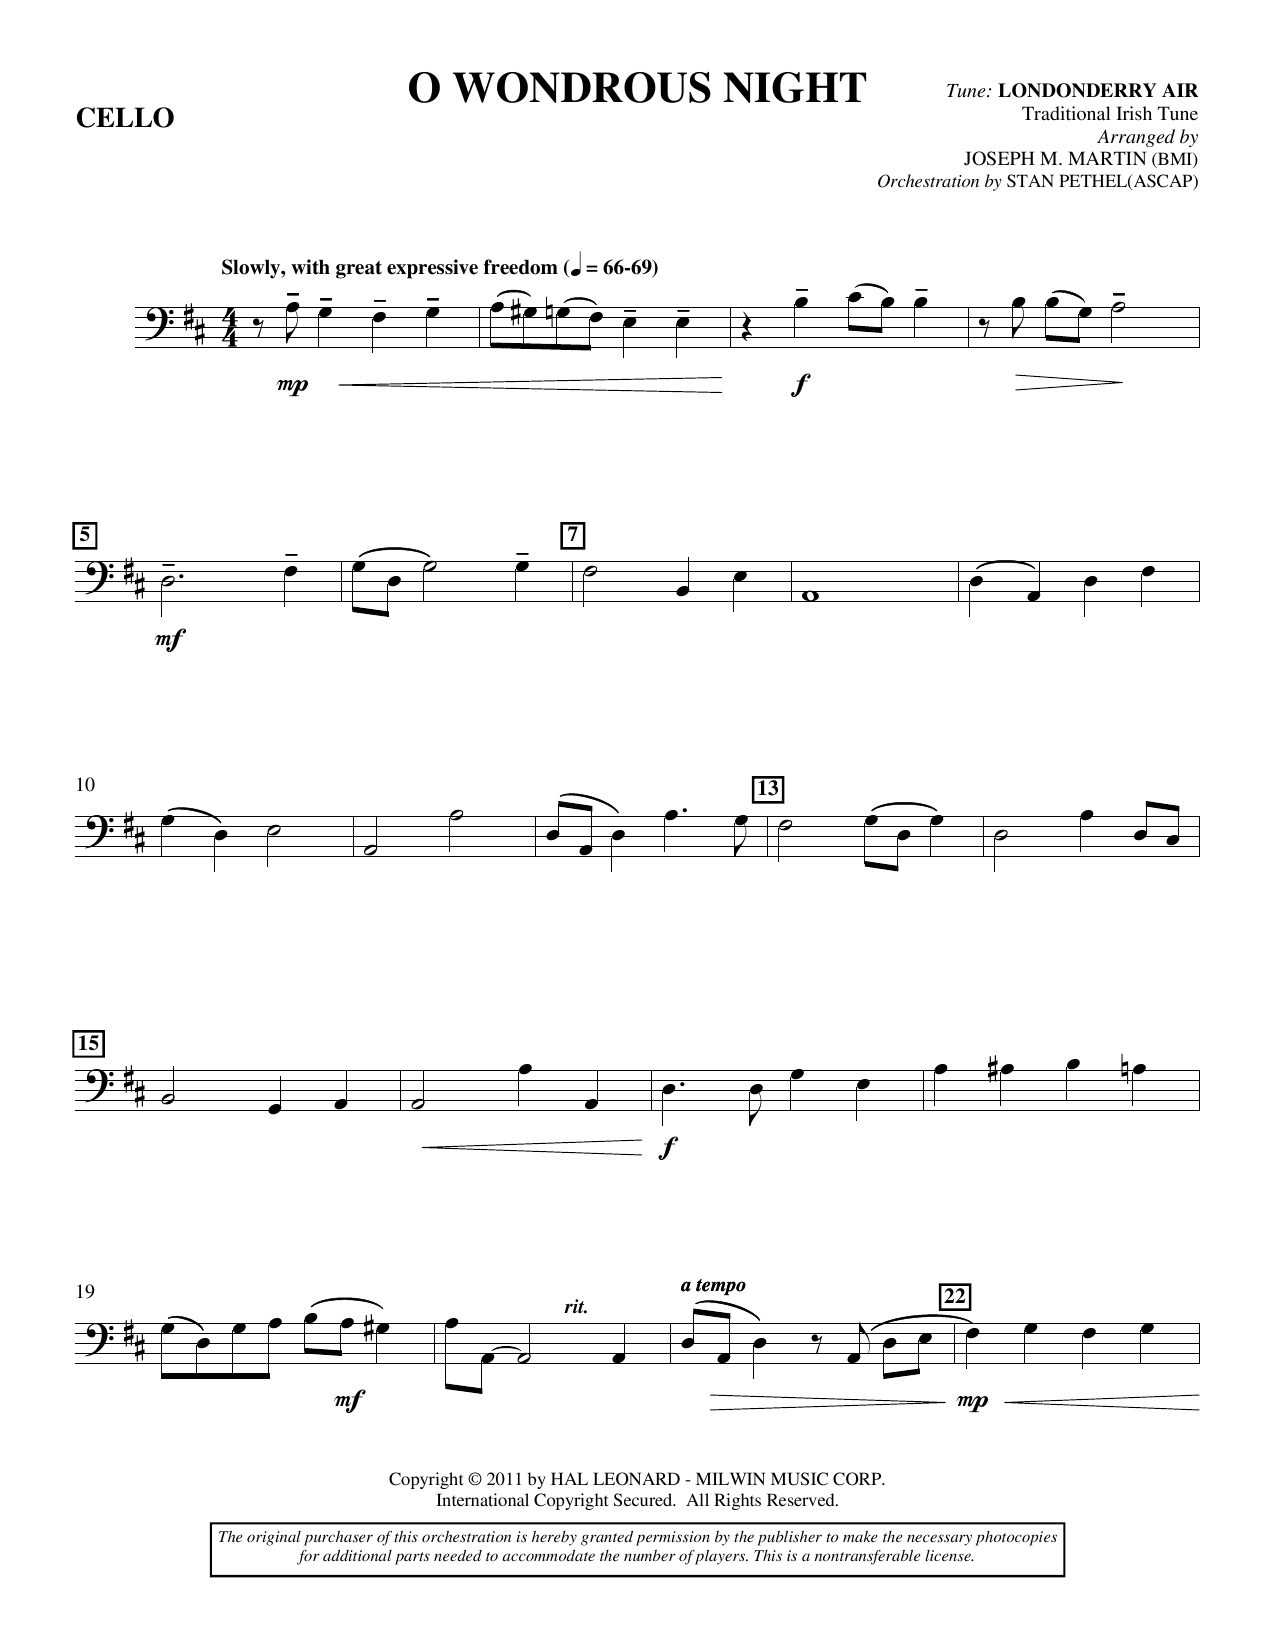 O Wondrous Night - Cello Sheet Music